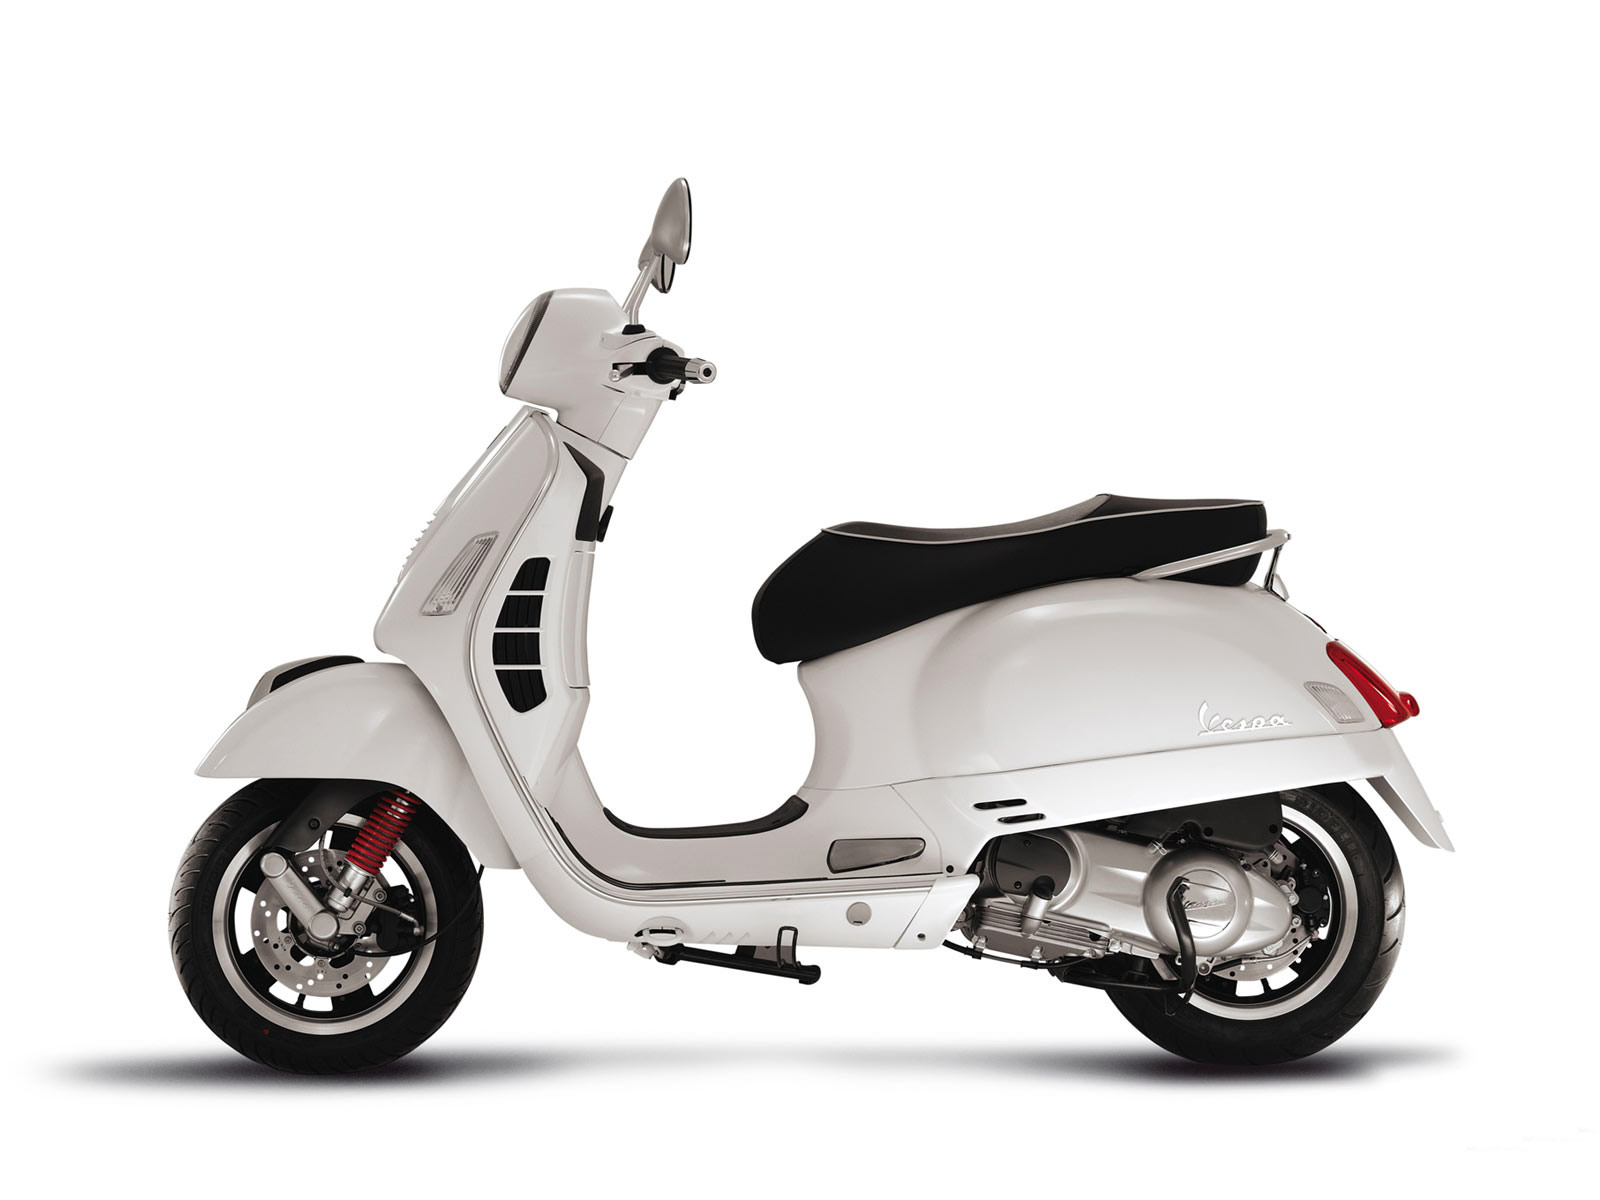 2008 vespa gts 300 super scooter pictures insurance info. Black Bedroom Furniture Sets. Home Design Ideas